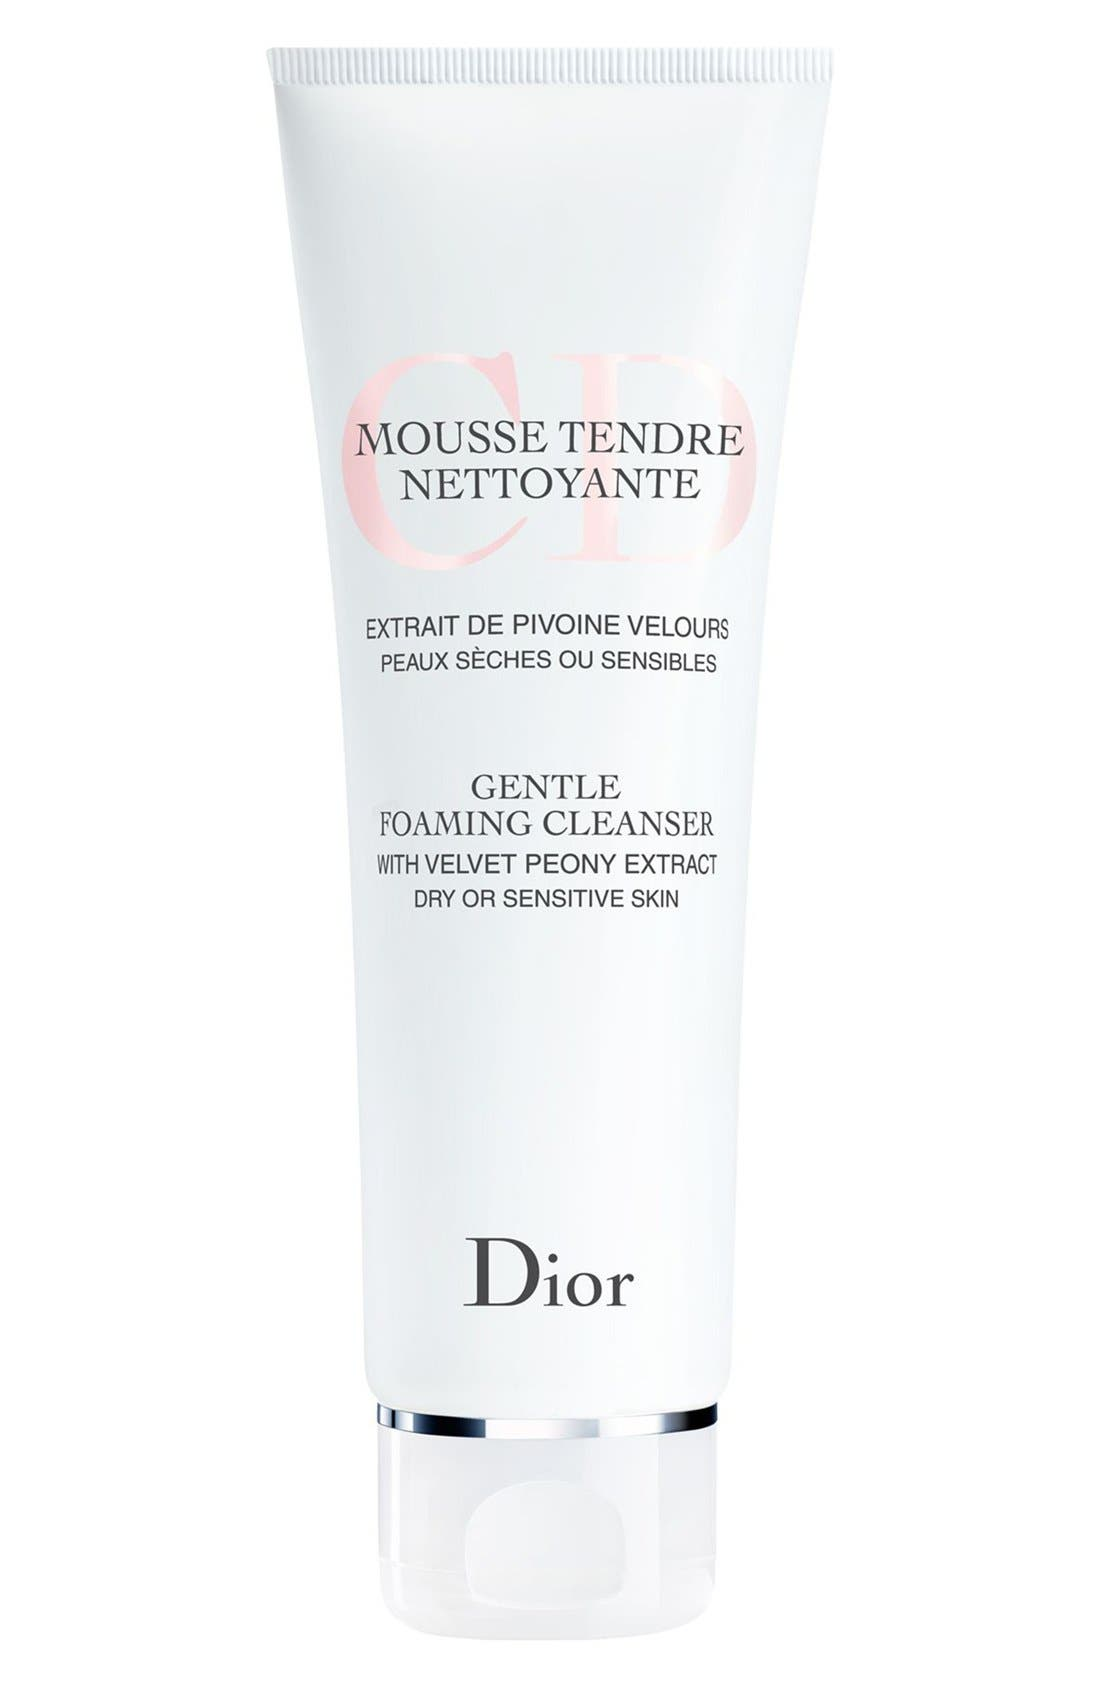 Gentle Foaming Cleanser for Dry or Sensitive Skin,                             Main thumbnail 1, color,                             000